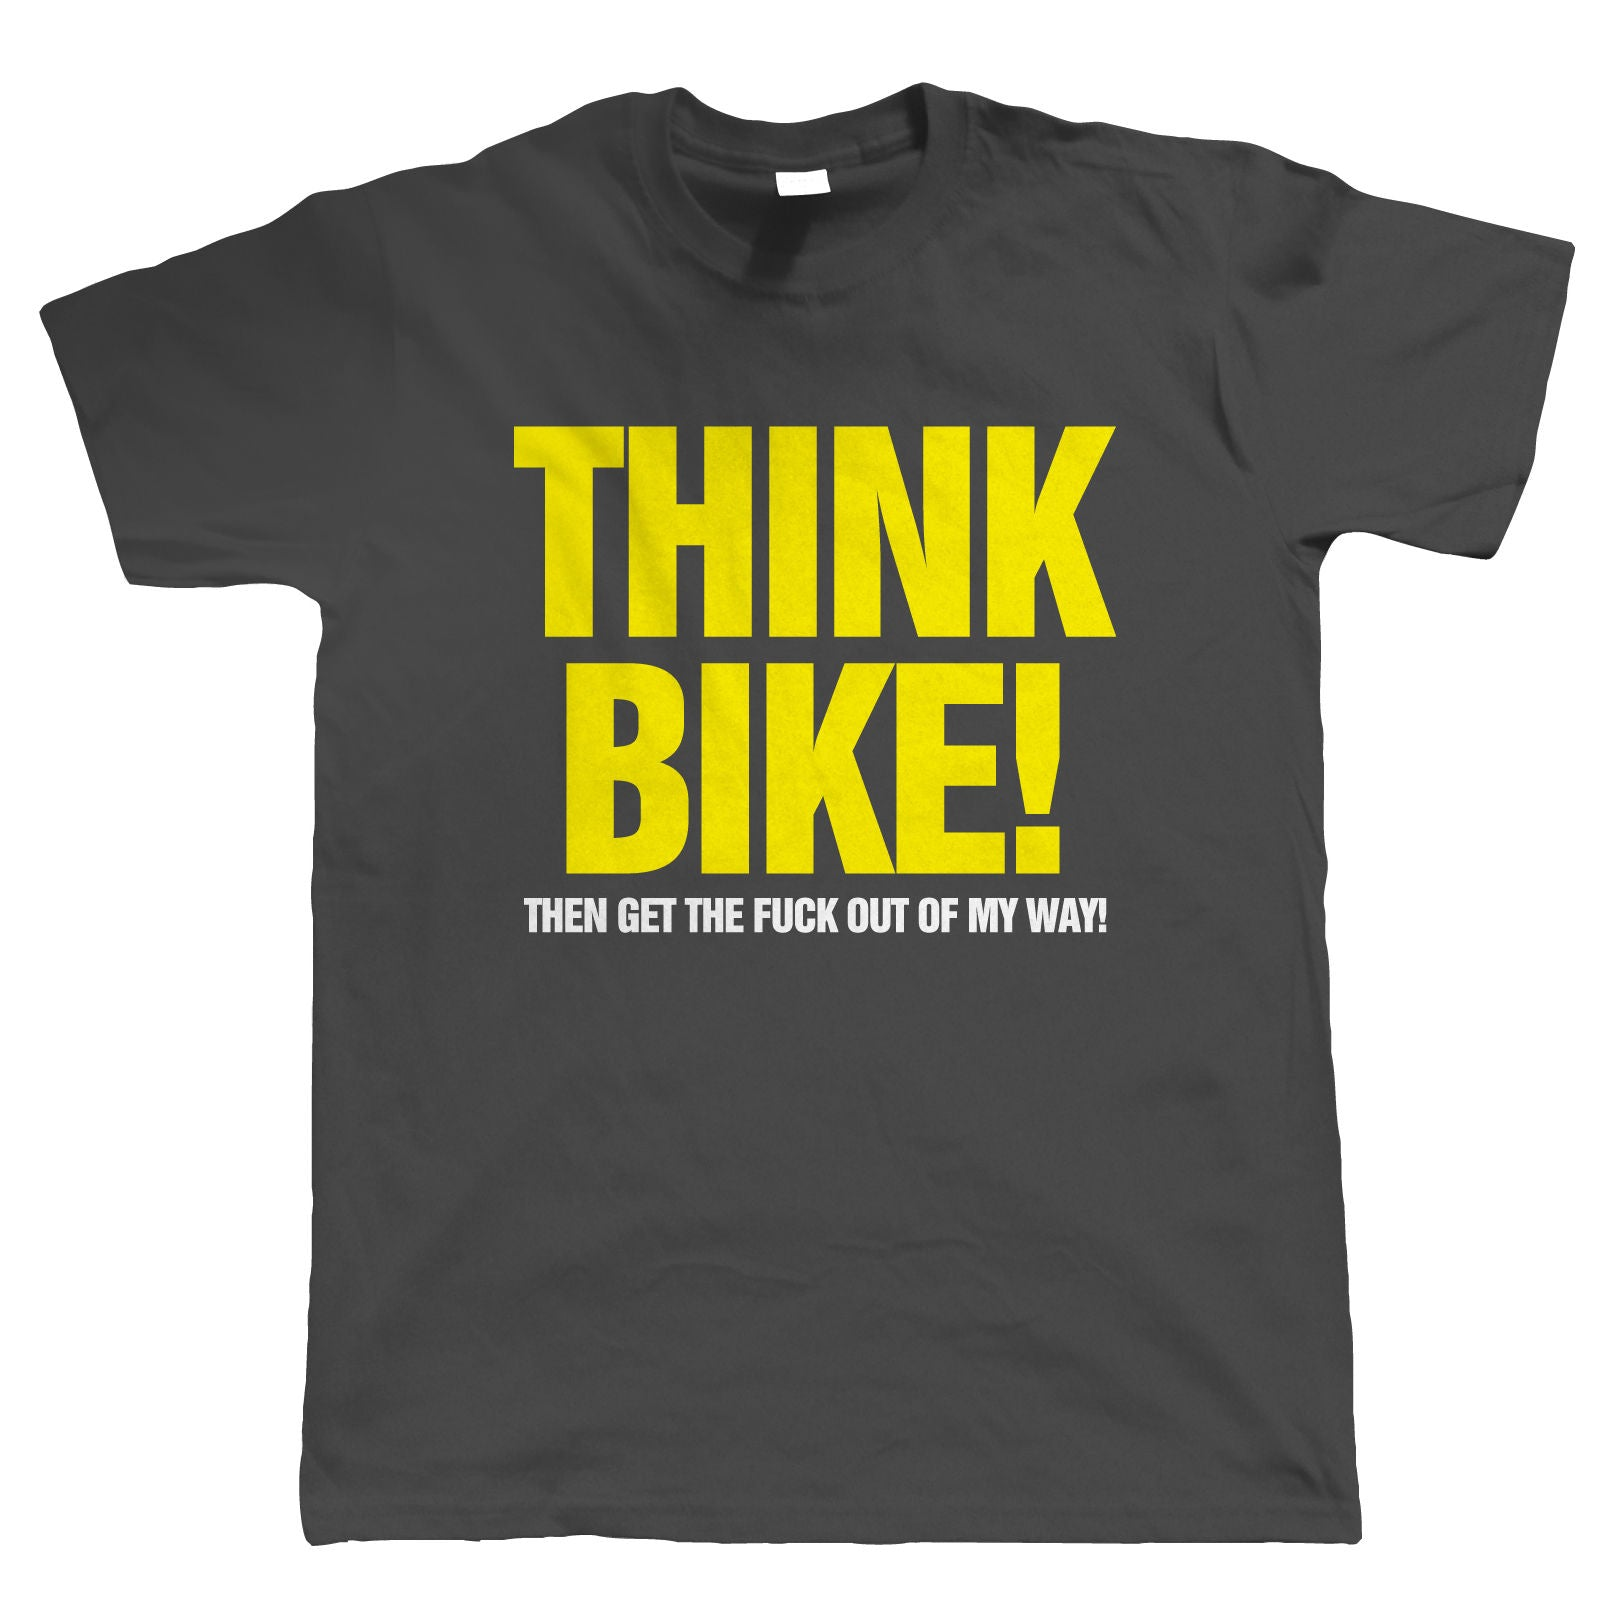 Think Bike Mens Funny Biker T Shirt | Motorbike Enthusiast Vintage British Motorcycle Club Chopper Cafe Racer Superbike Gentleman Biker | Cool Birthday Christmas Gift Present Him Dad Husband Son